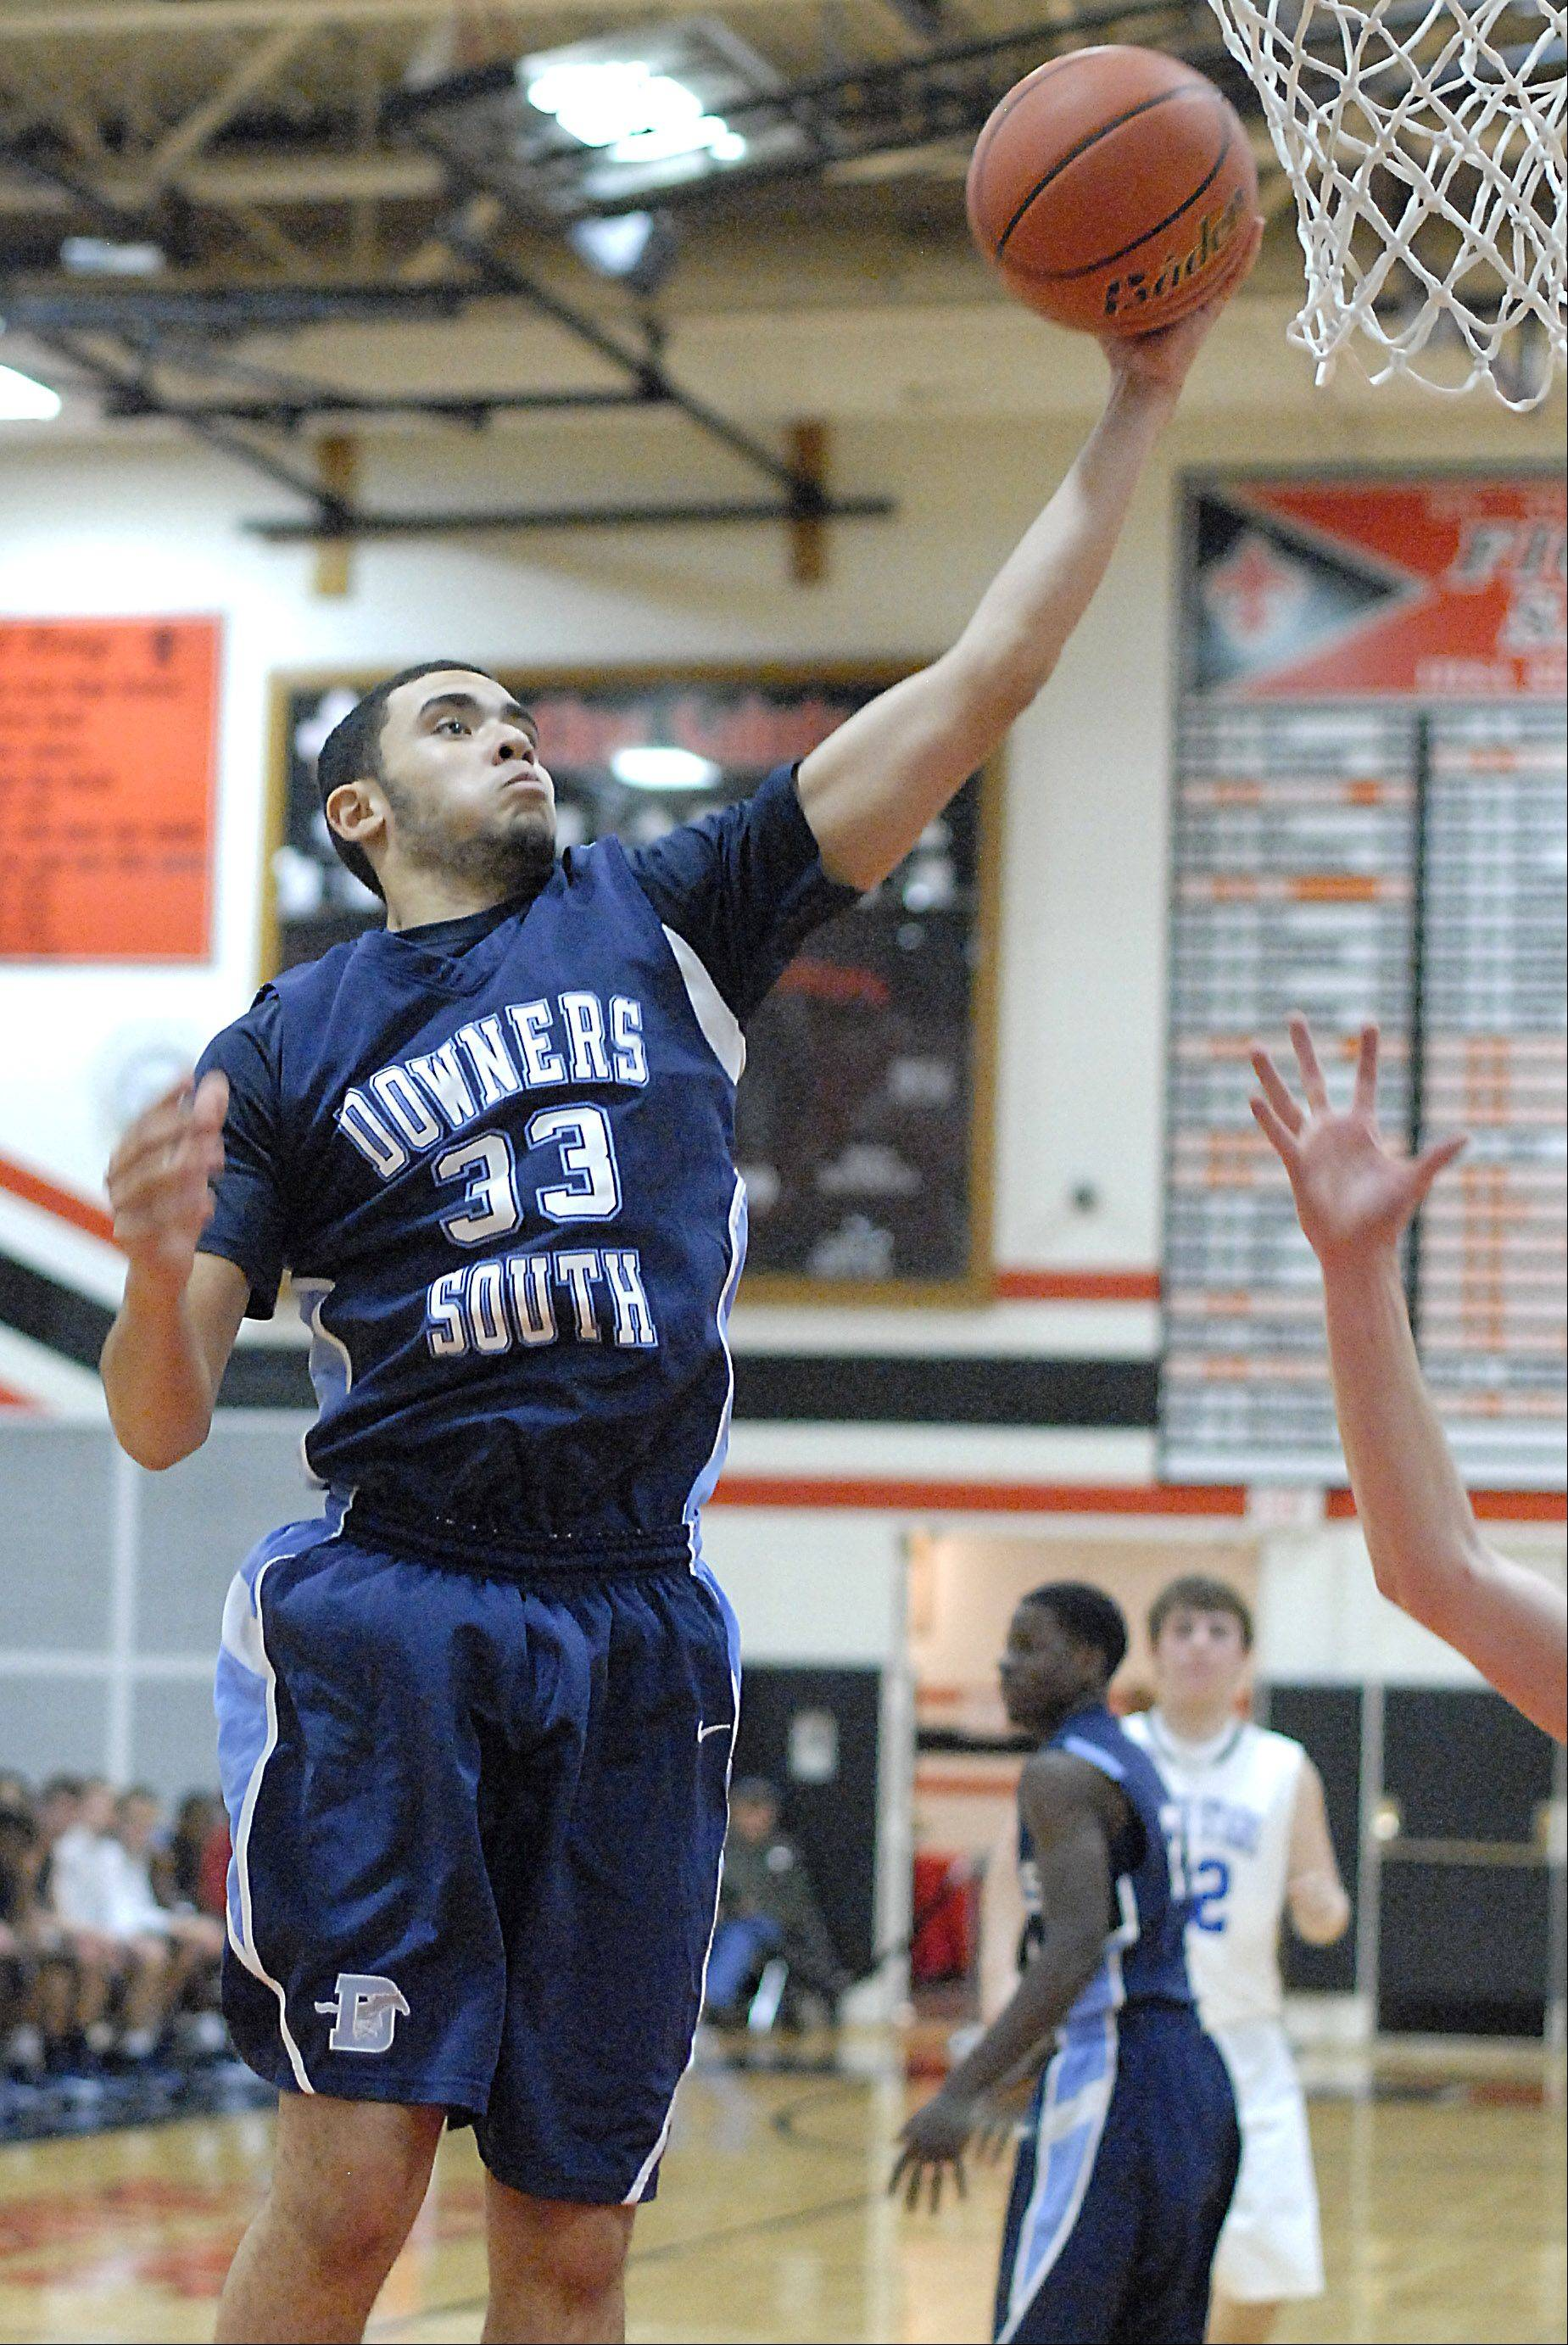 Downers Grove South�s Jordan Cannon grabs a rebound in the third quarter on Friday, November 23.